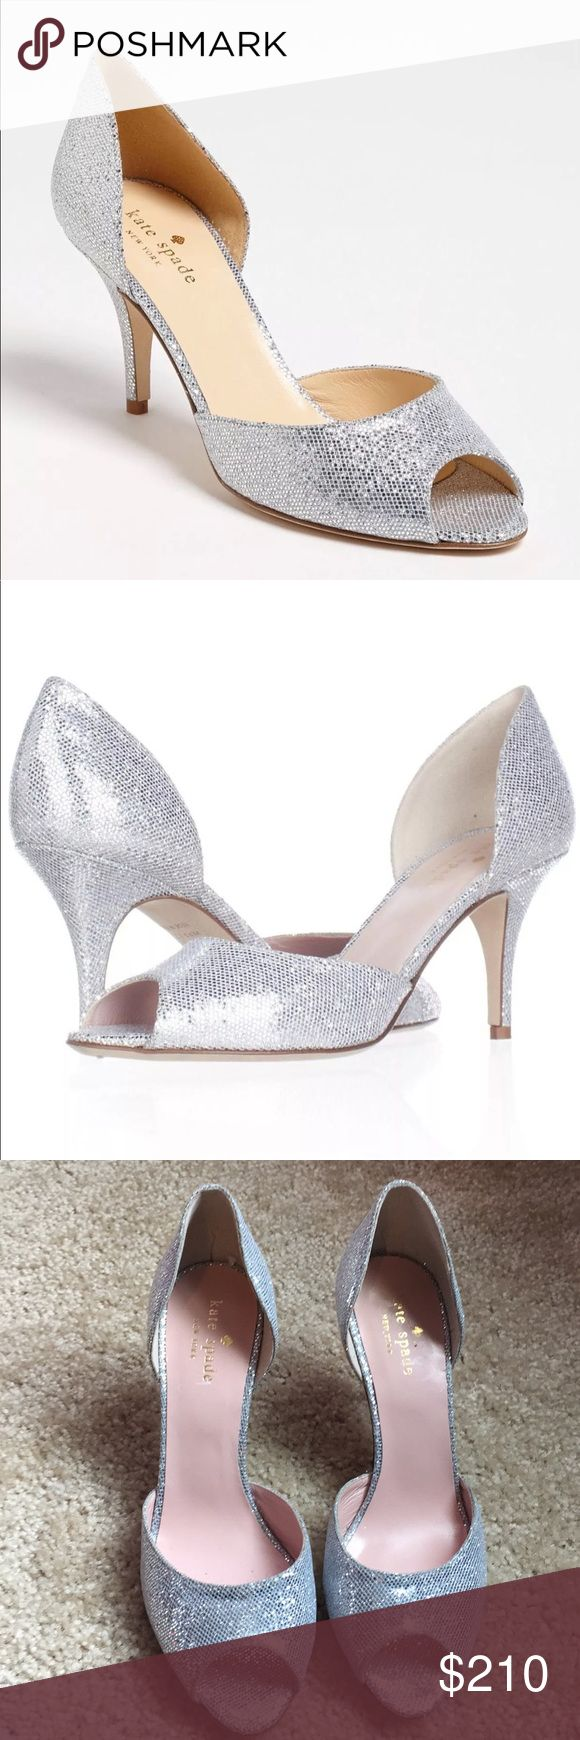 New! Kate Spade Glitter Silver starlight peep -7 These are brand new without box. Size 7  Brand: Kate Spade New York Heel: 3.50 inches Material: Synthetic Color: Silver/Starlight Size:7 US Toe-Shape: Peep-Toe   Smoke free  home kate spade Shoes Heels